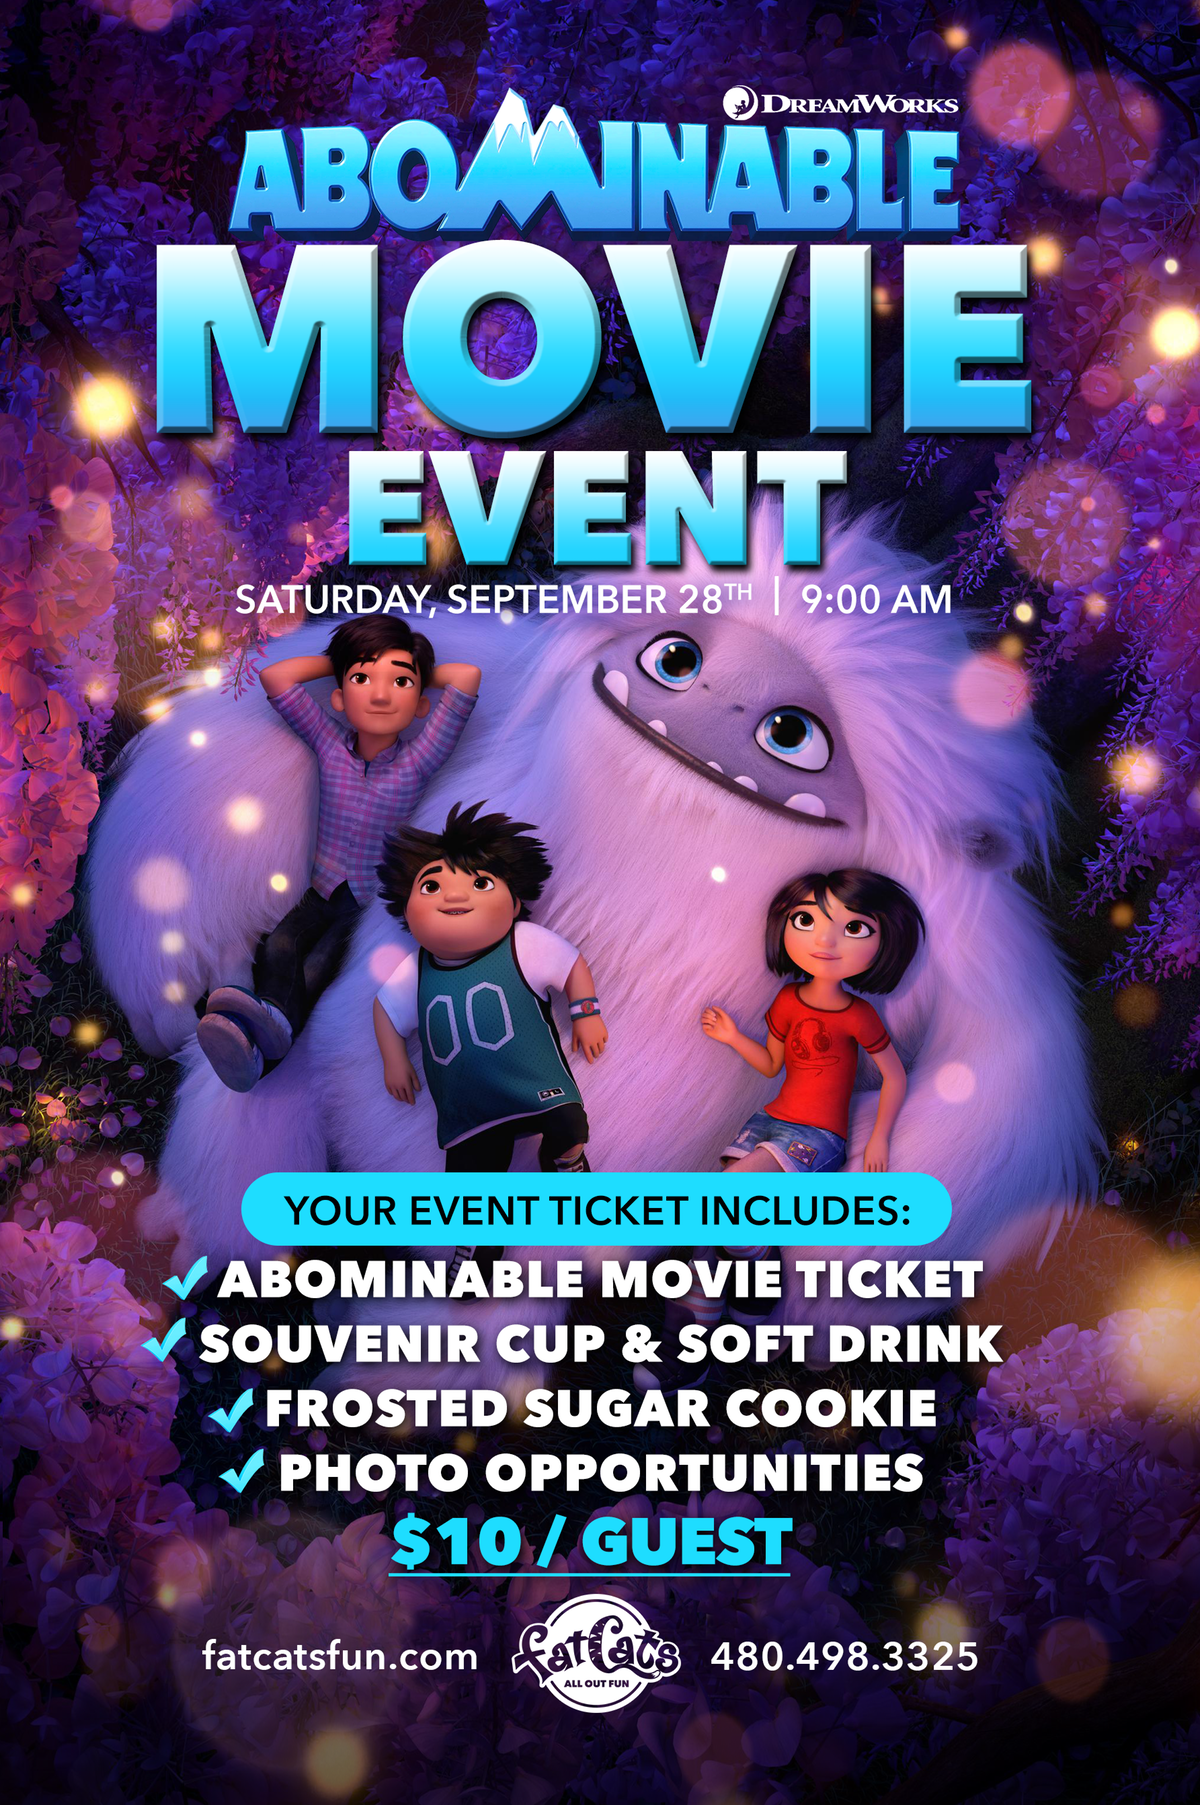 Abominable Movie Event Poster